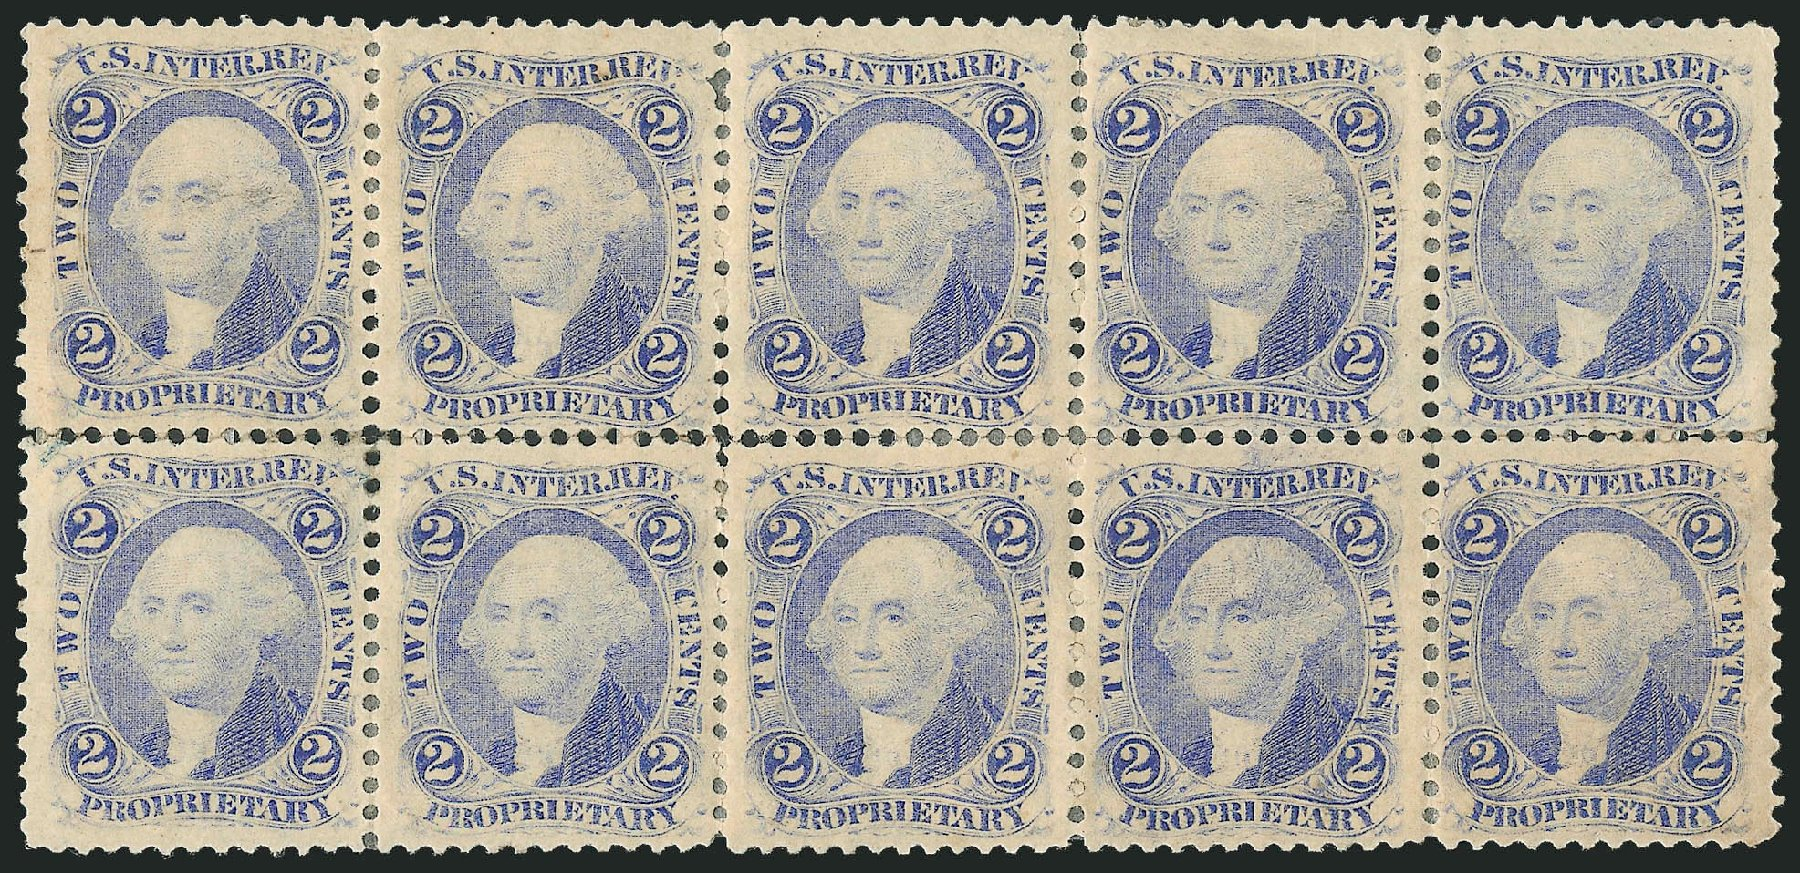 US Stamps Price Scott Cat. R13: 1862 2c Revenue Proprietary. Robert Siegel Auction Galleries, Jun 2015, Sale 1100, Lot 140